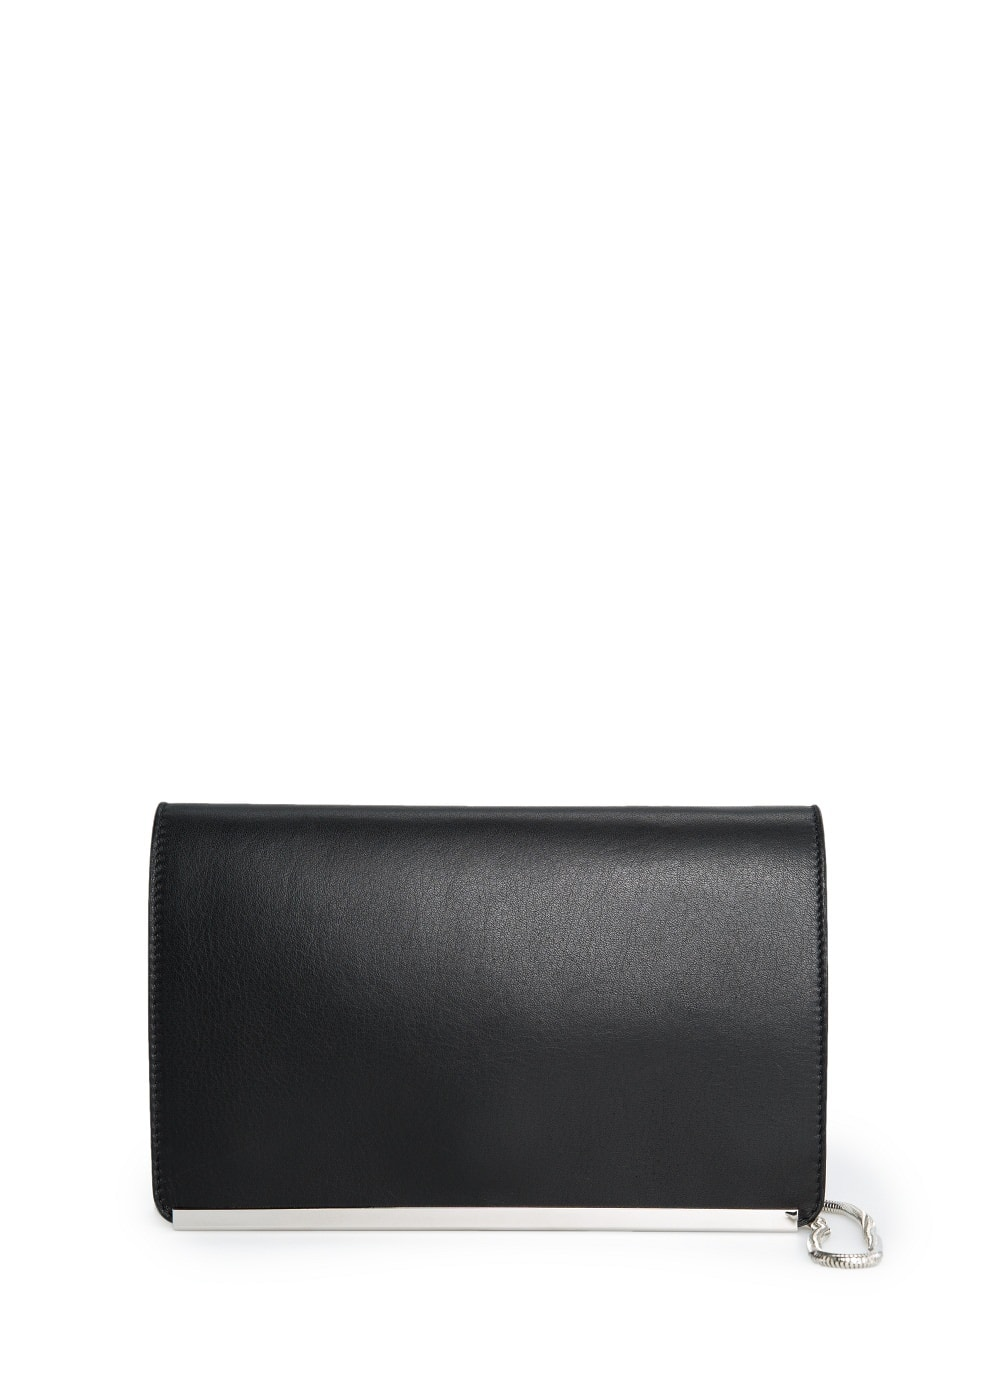 PREMIUM - Rectangular leather clutch